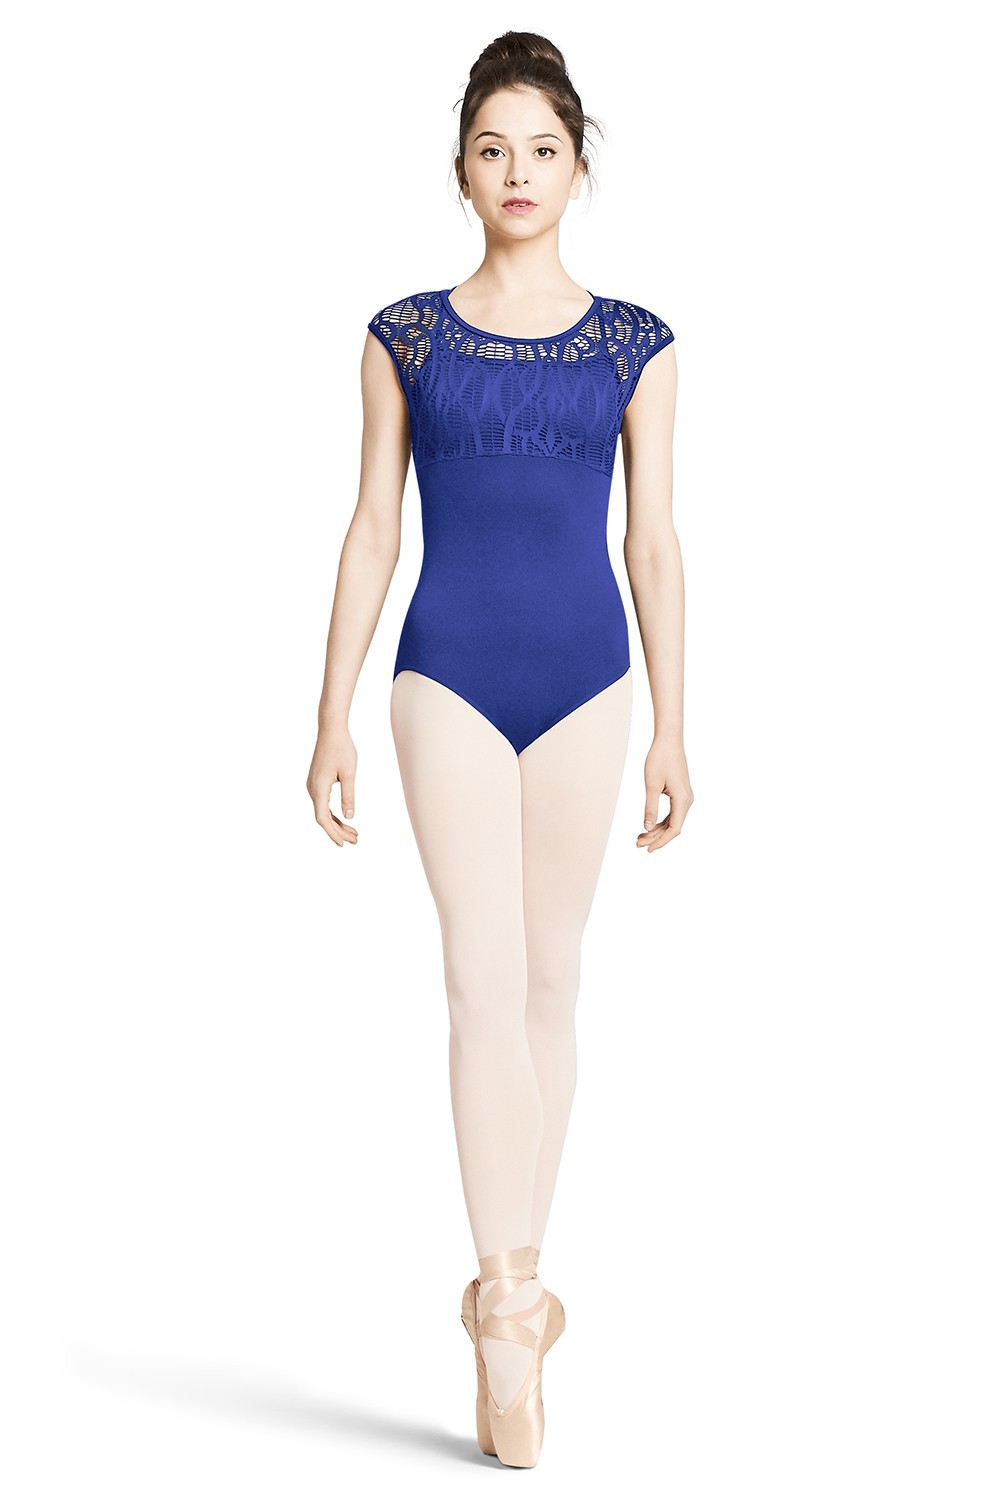 Body Con Maniche Ad Aletta Spalline Incrociate Sul Retro Women's Dance Leotards